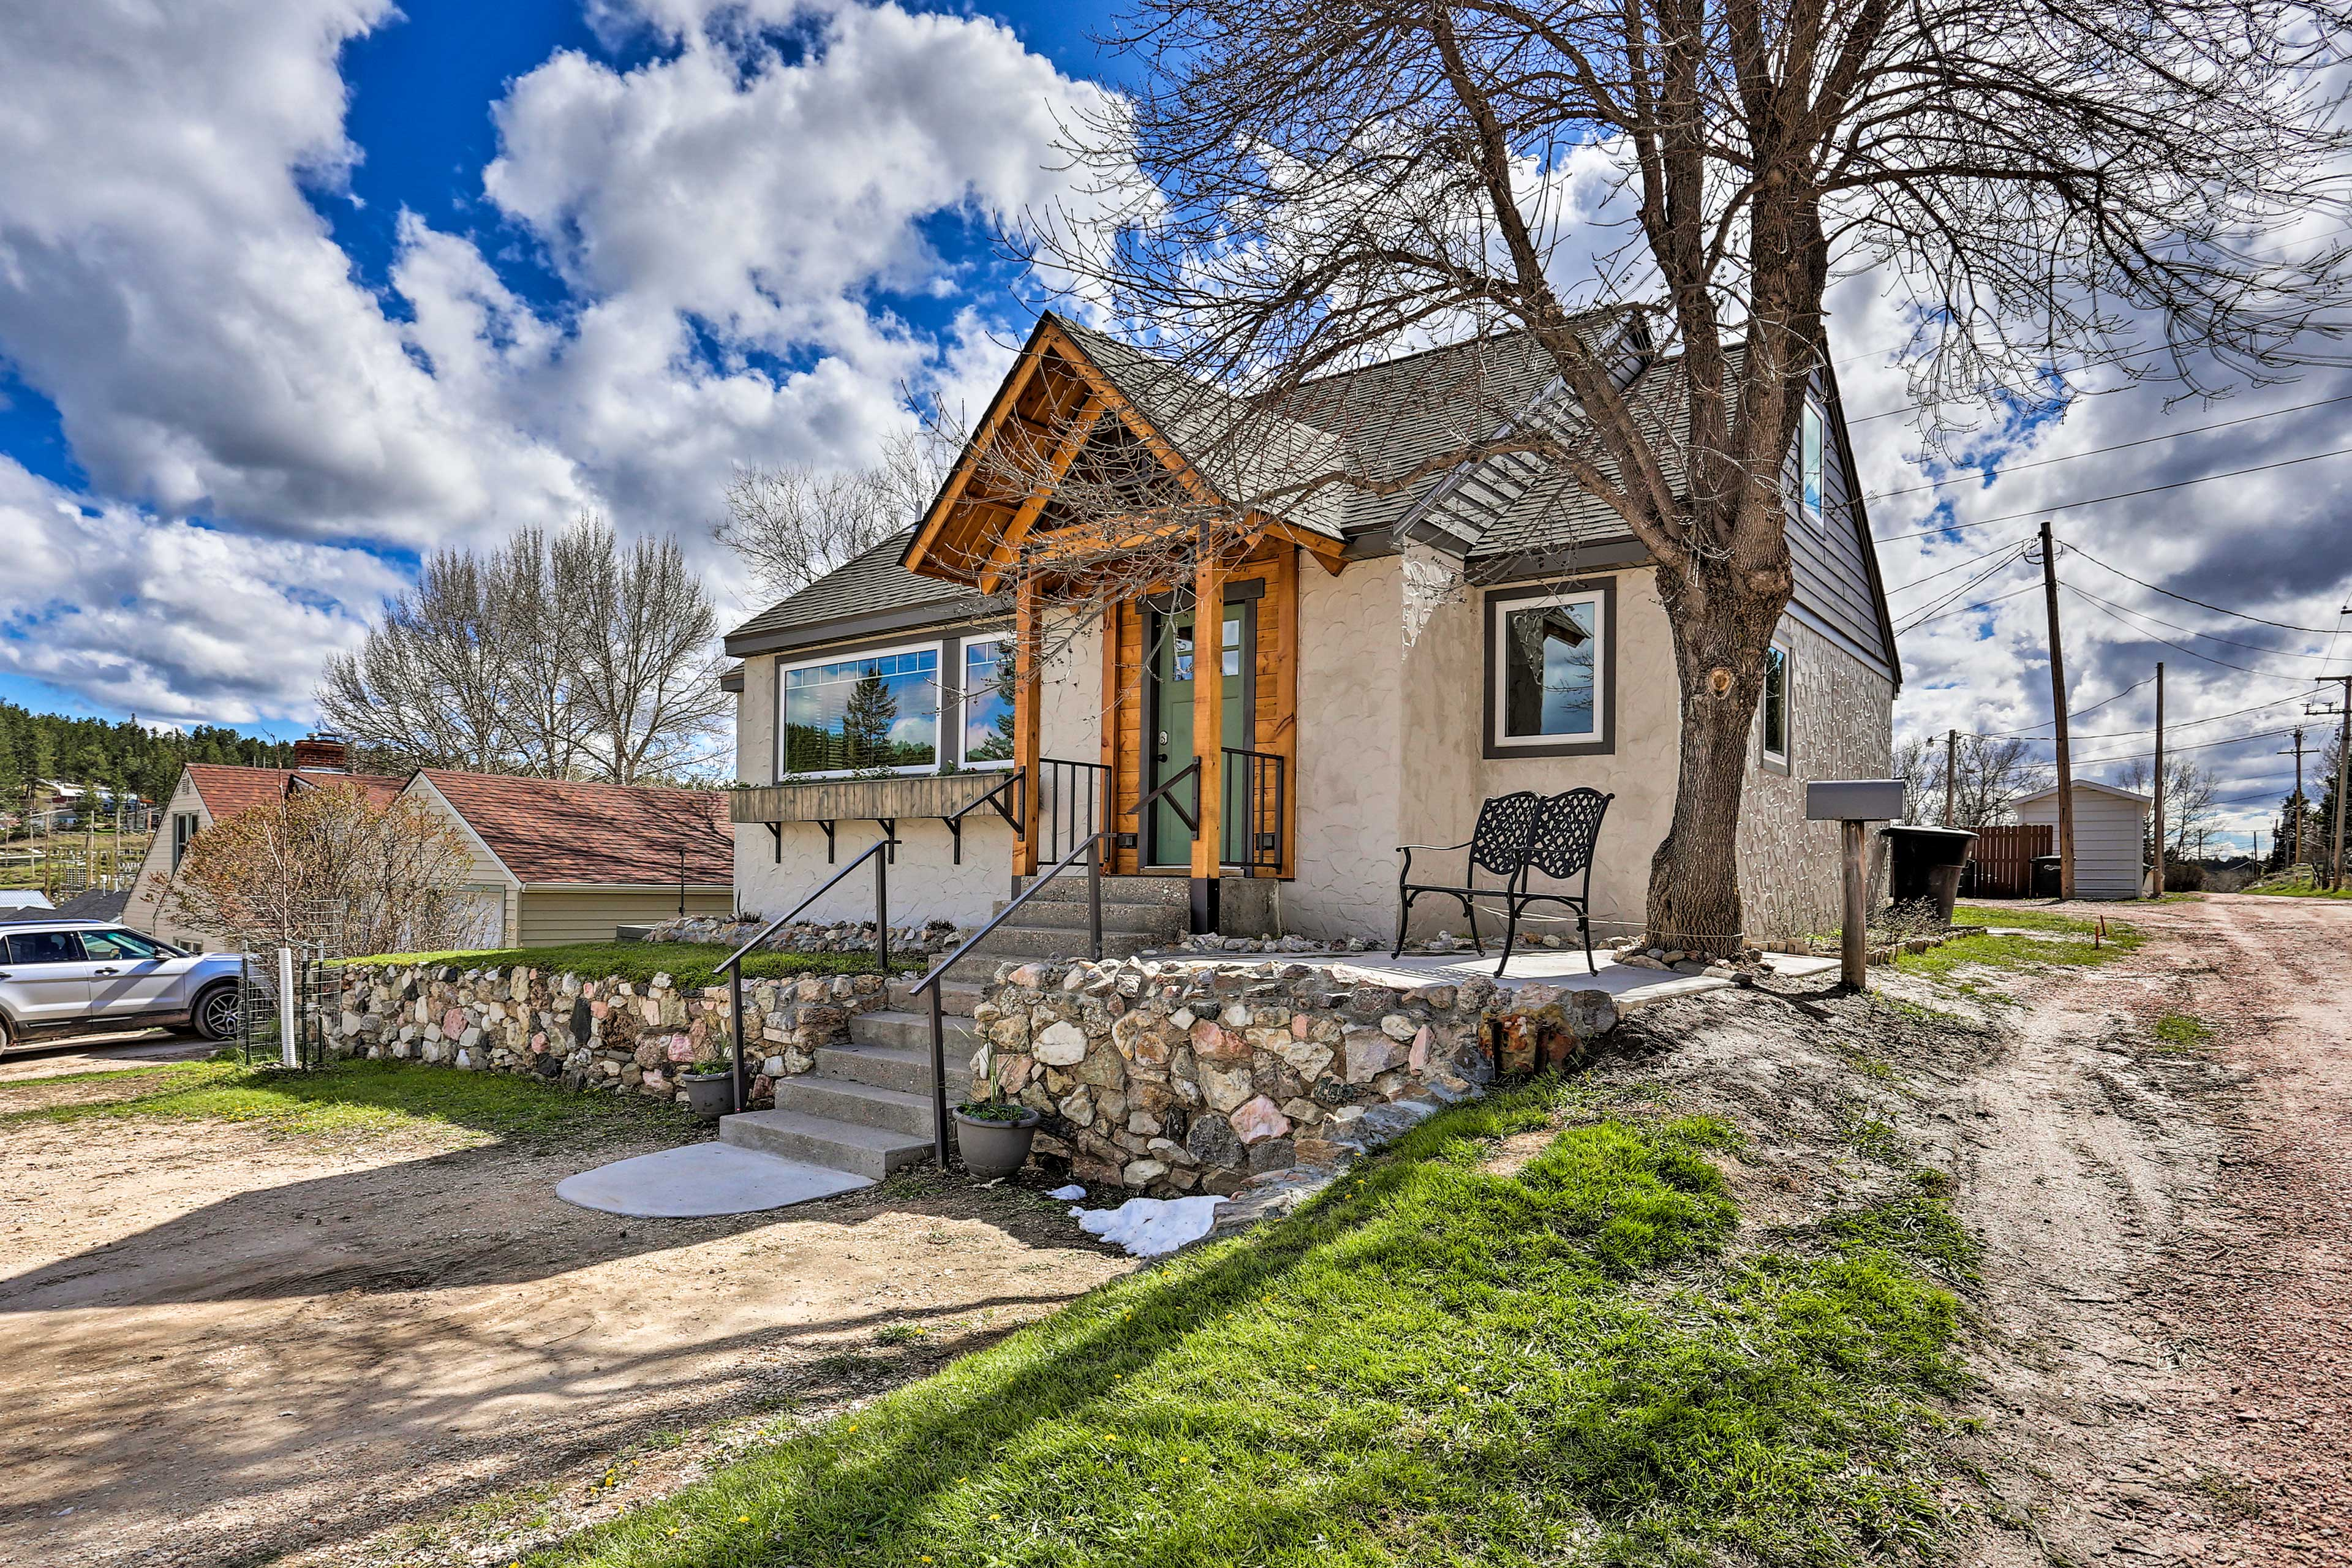 This one-of-a-kind cottage is just 1 block off the city's main street.